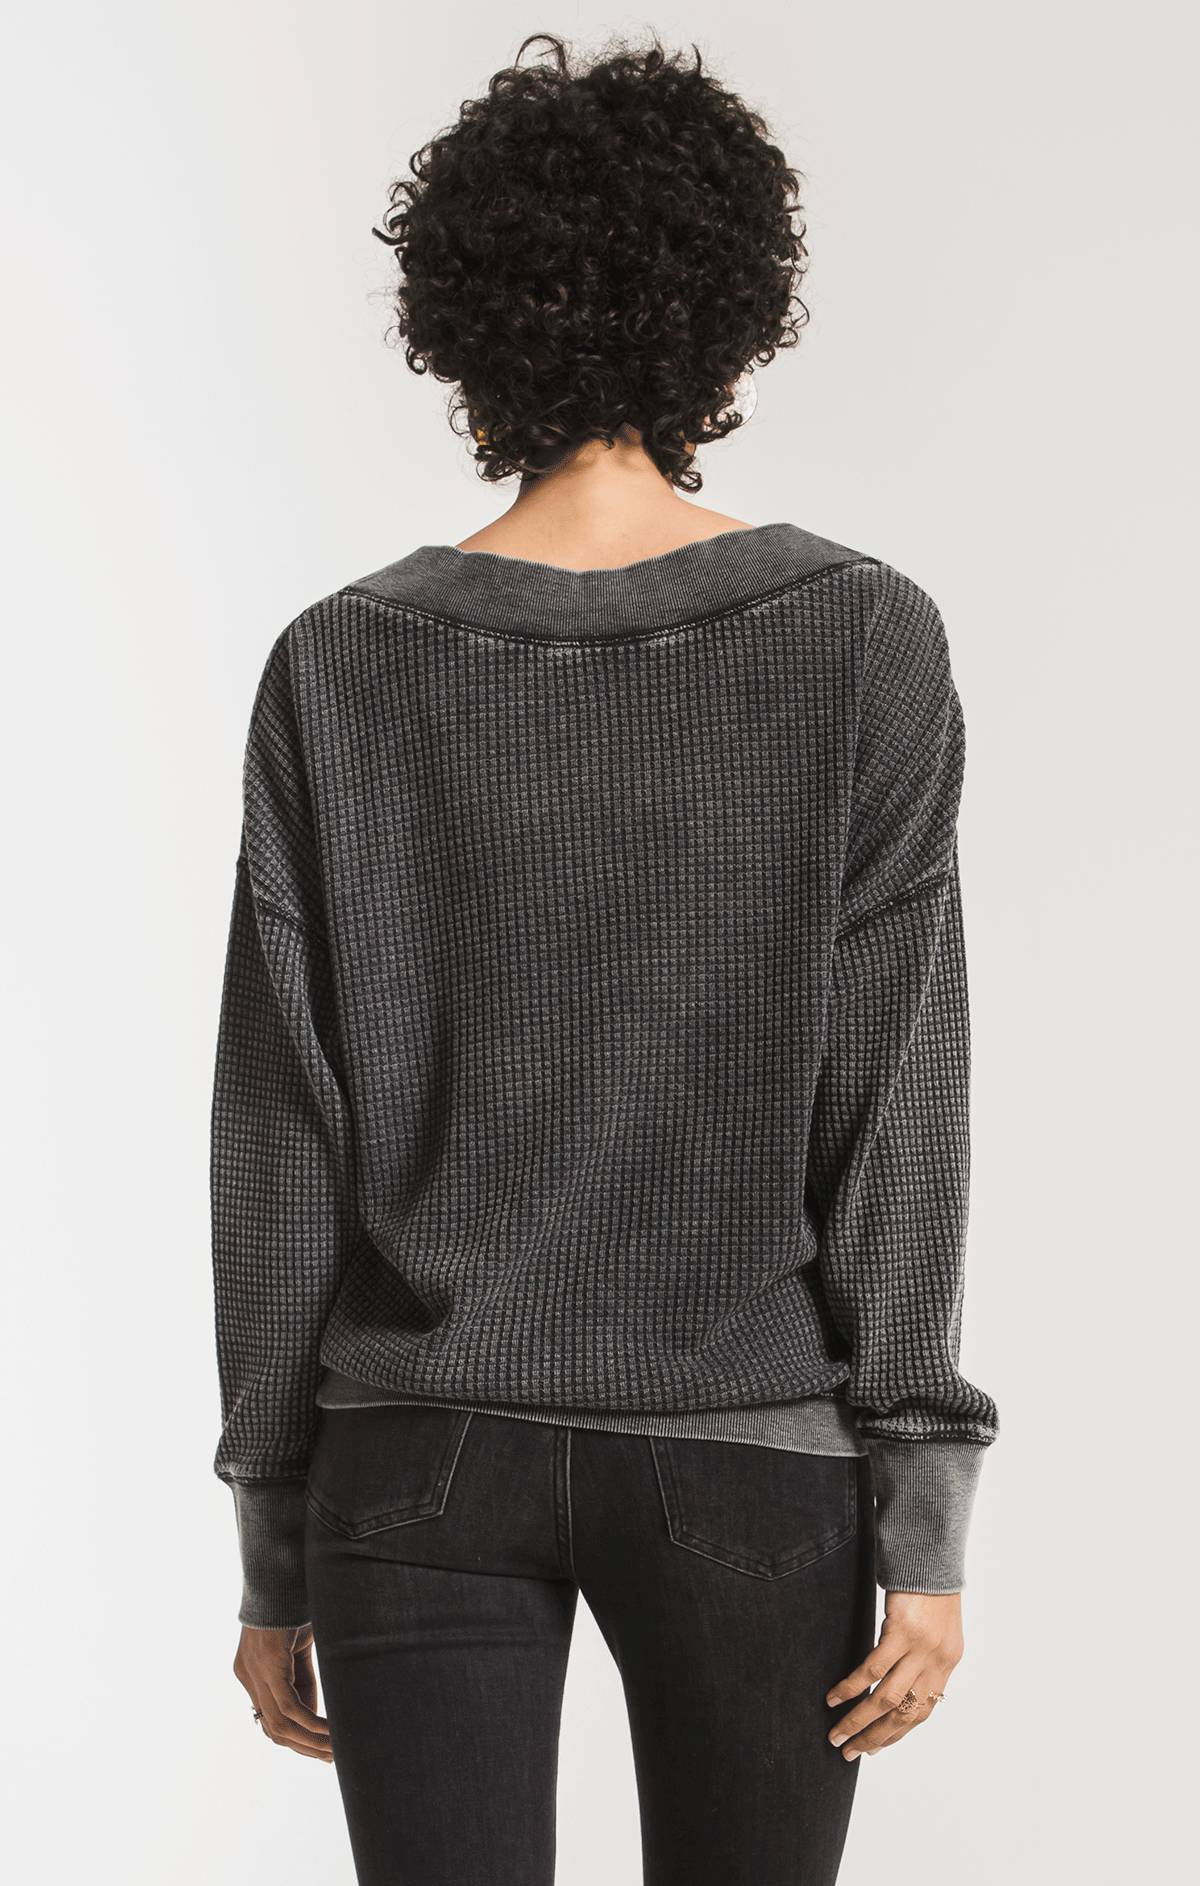 Tops The Emilia Thermal Top Black